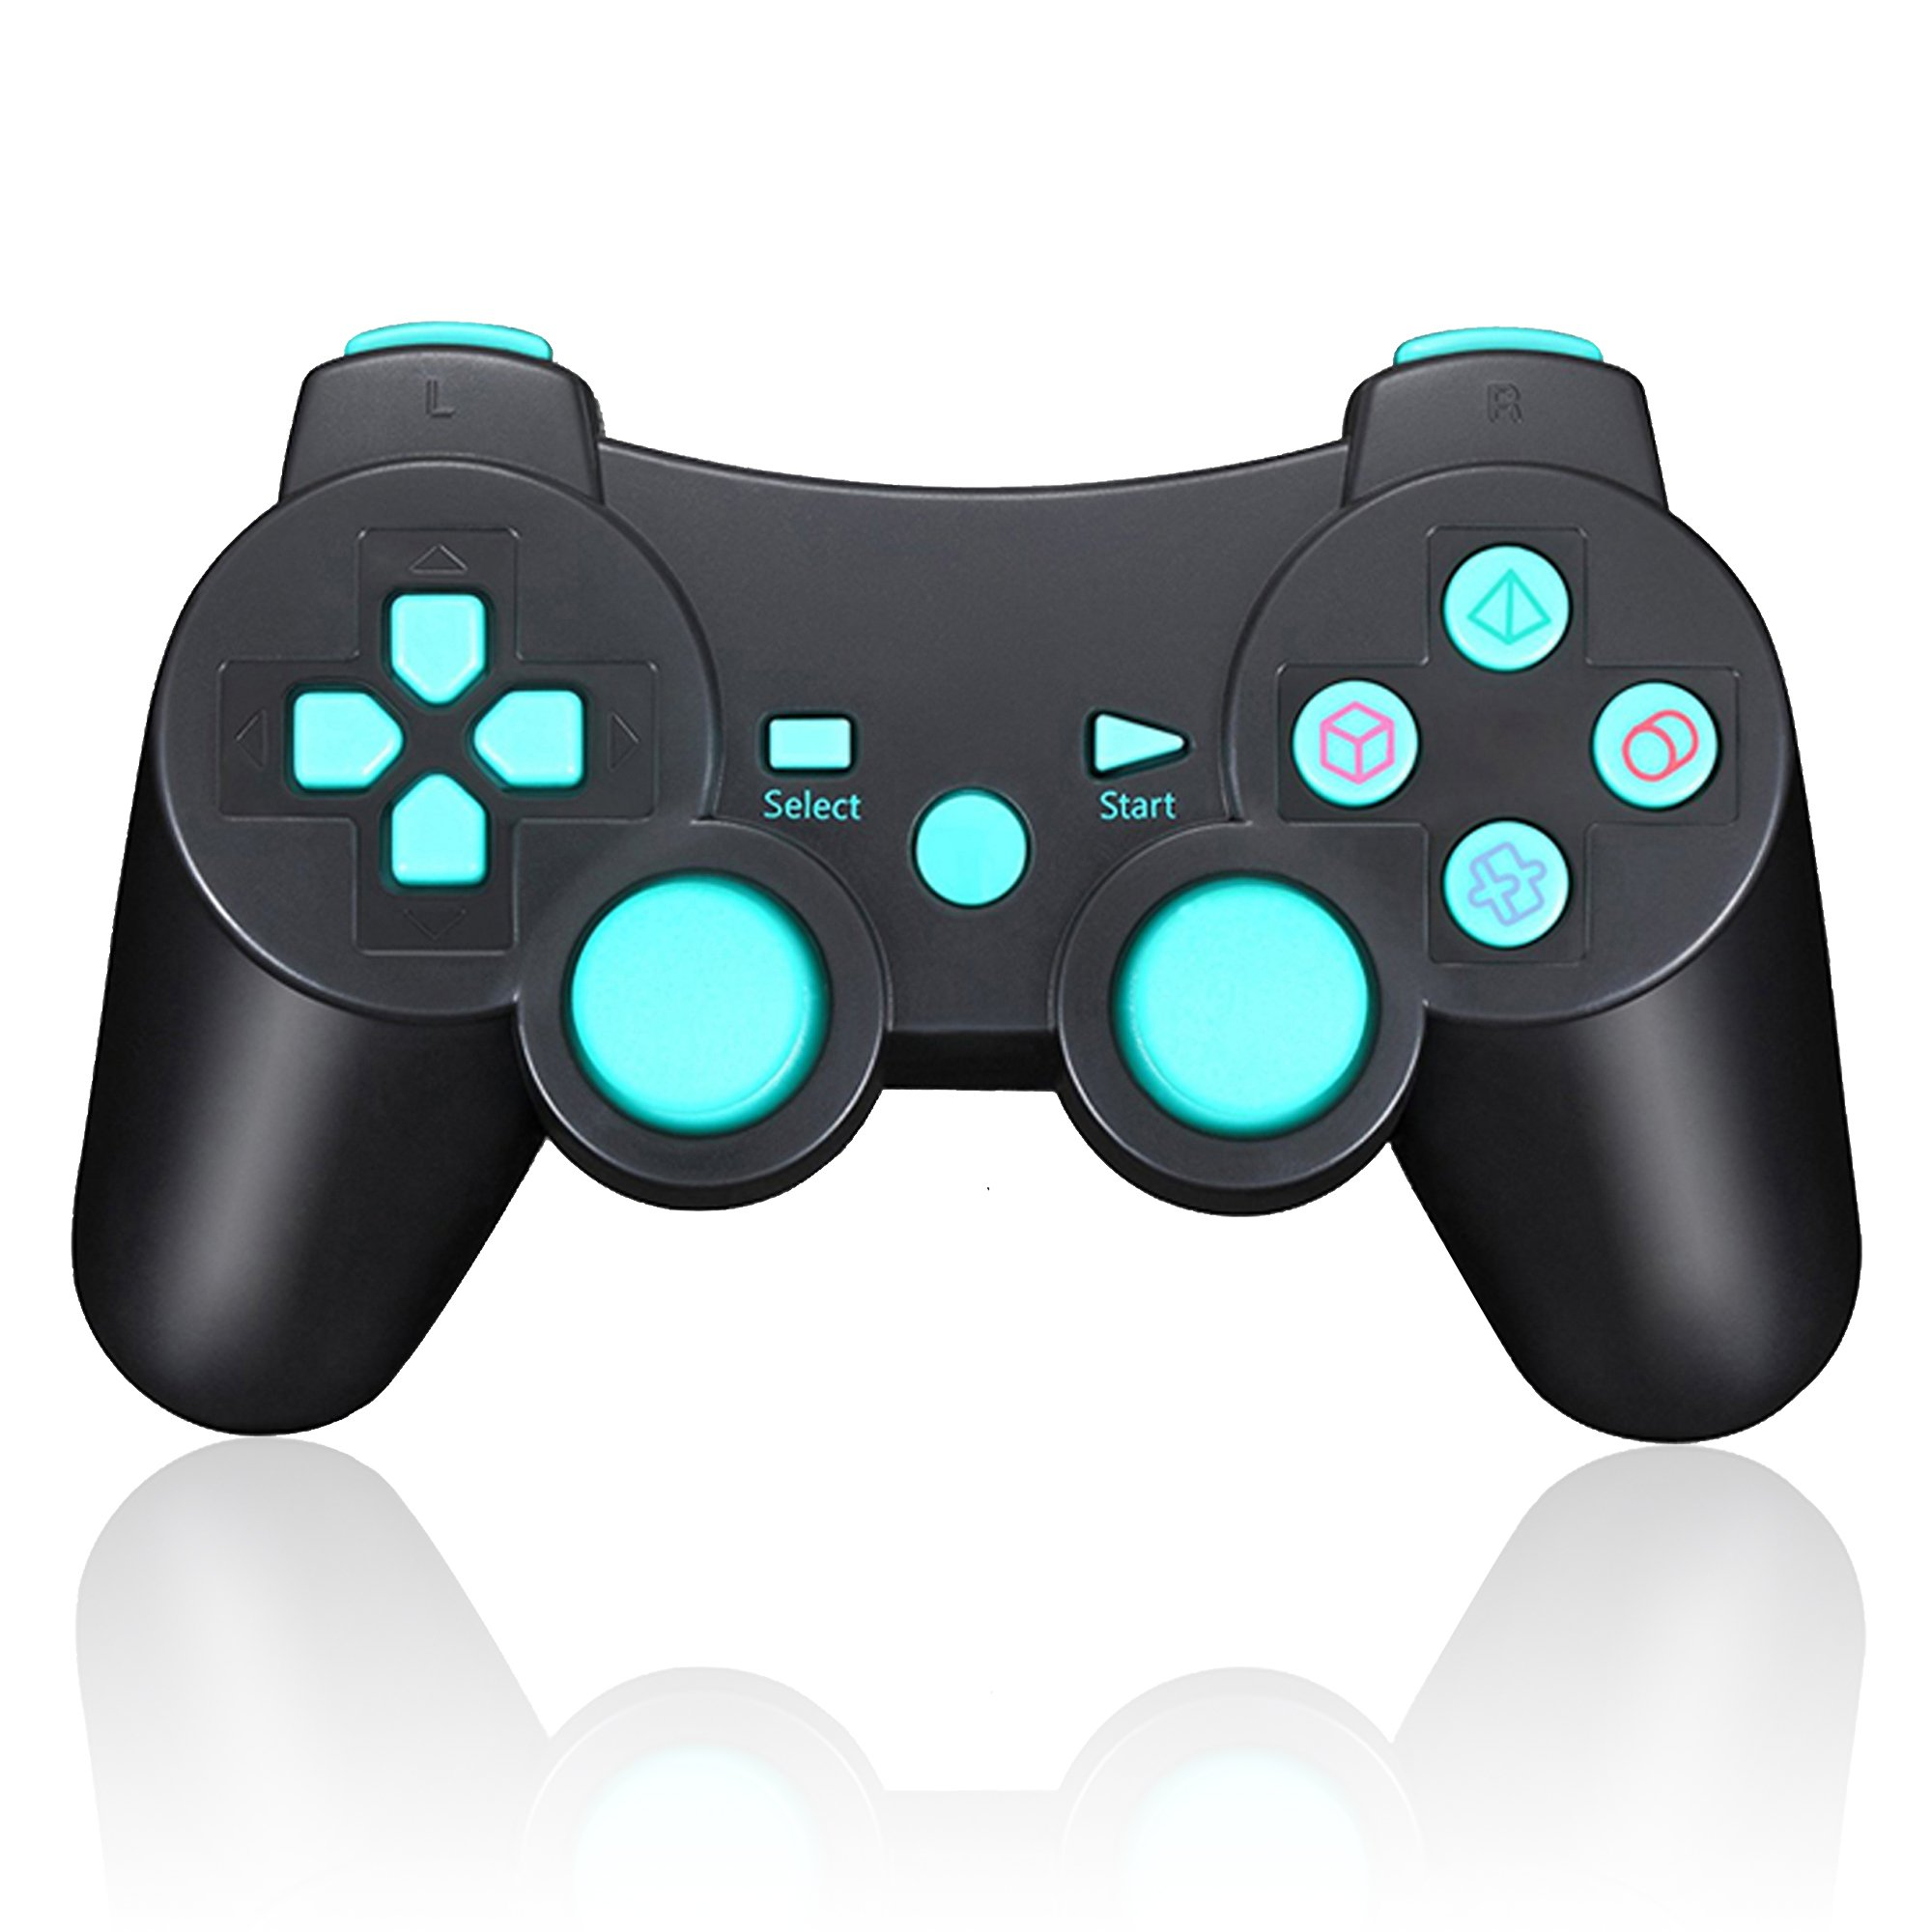 TPFOON PS3 Controller Wireless, Double Vibration SIXAXIS Gamepad Remote for Sony Playstation 3 DualShock 3 PC